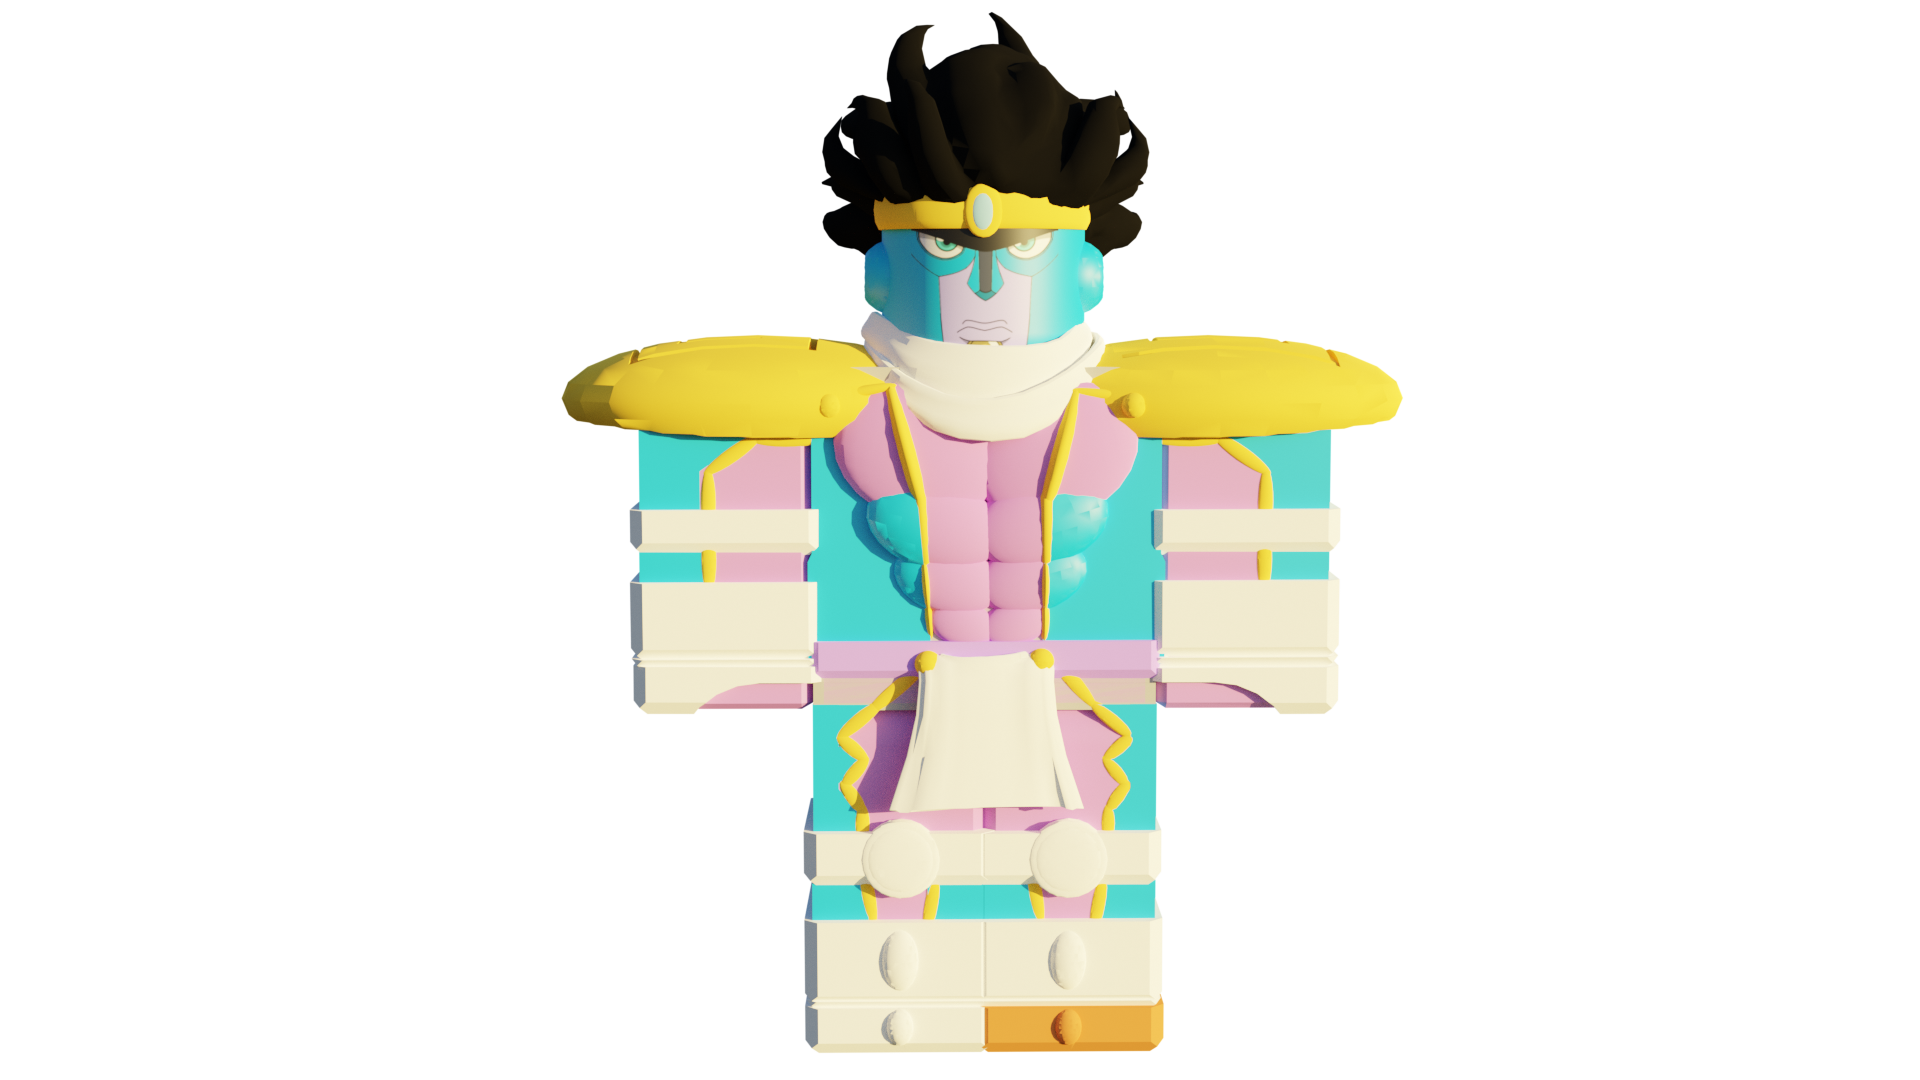 Star Platinum The World Jojo Blox Wiki Fandom